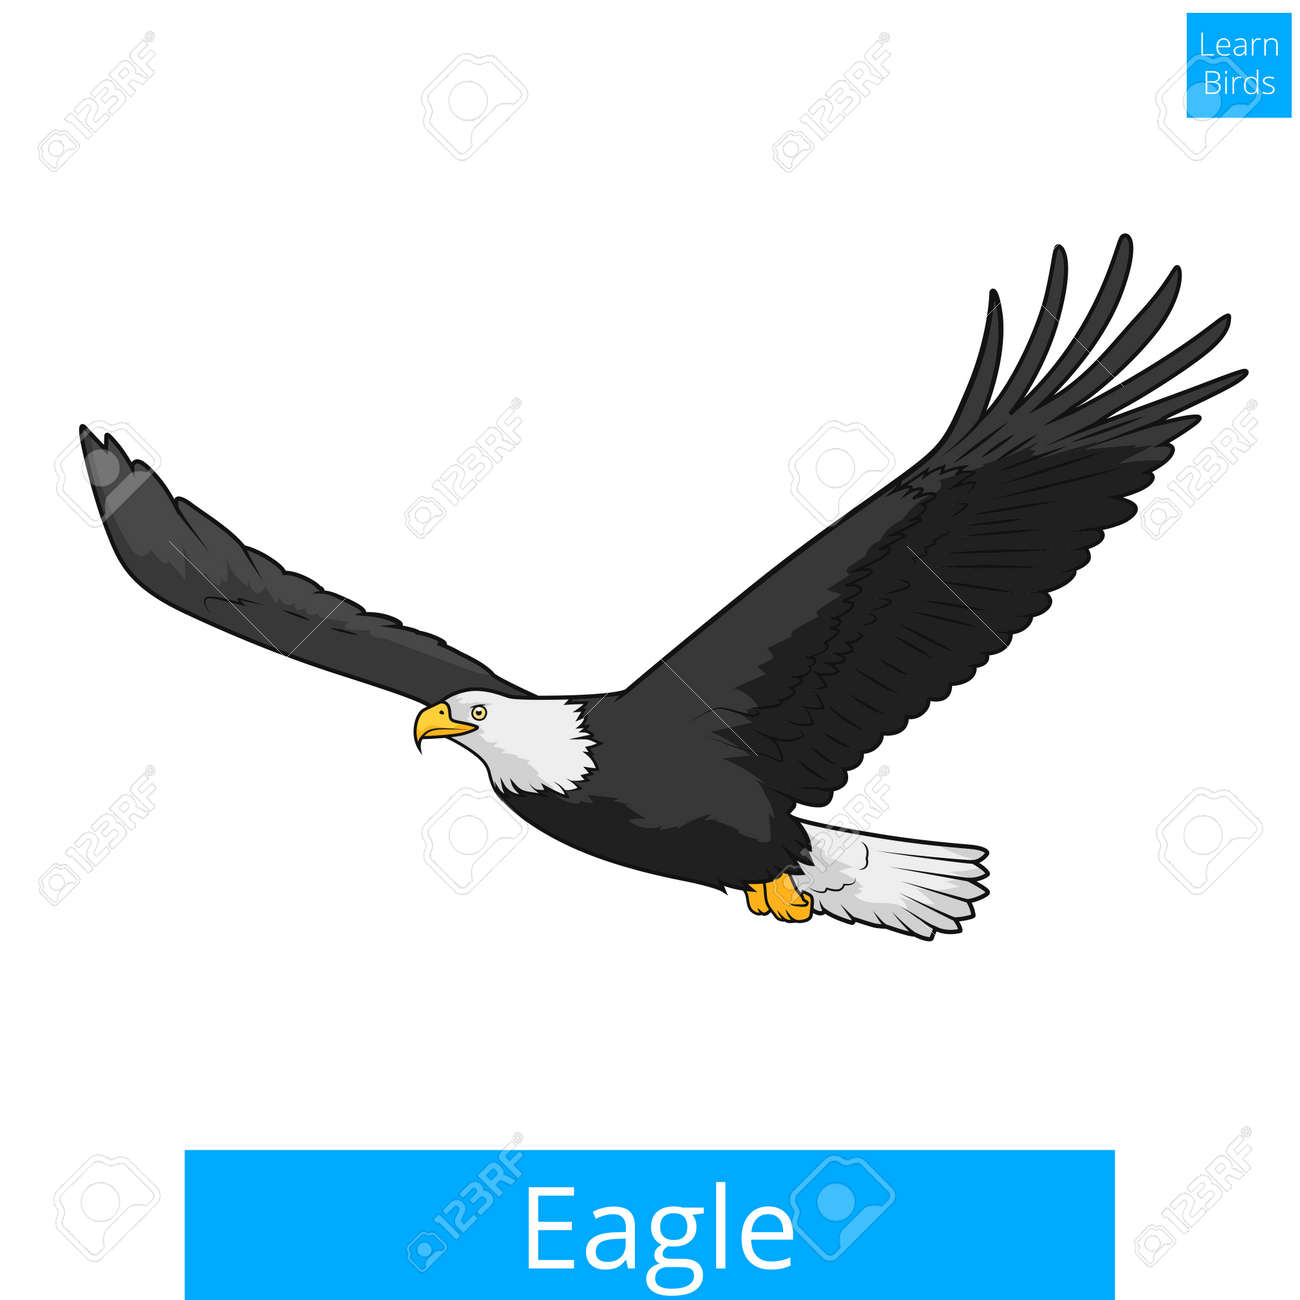 Eagle Learn Birds Educational Game Illustration Royalty Free ...